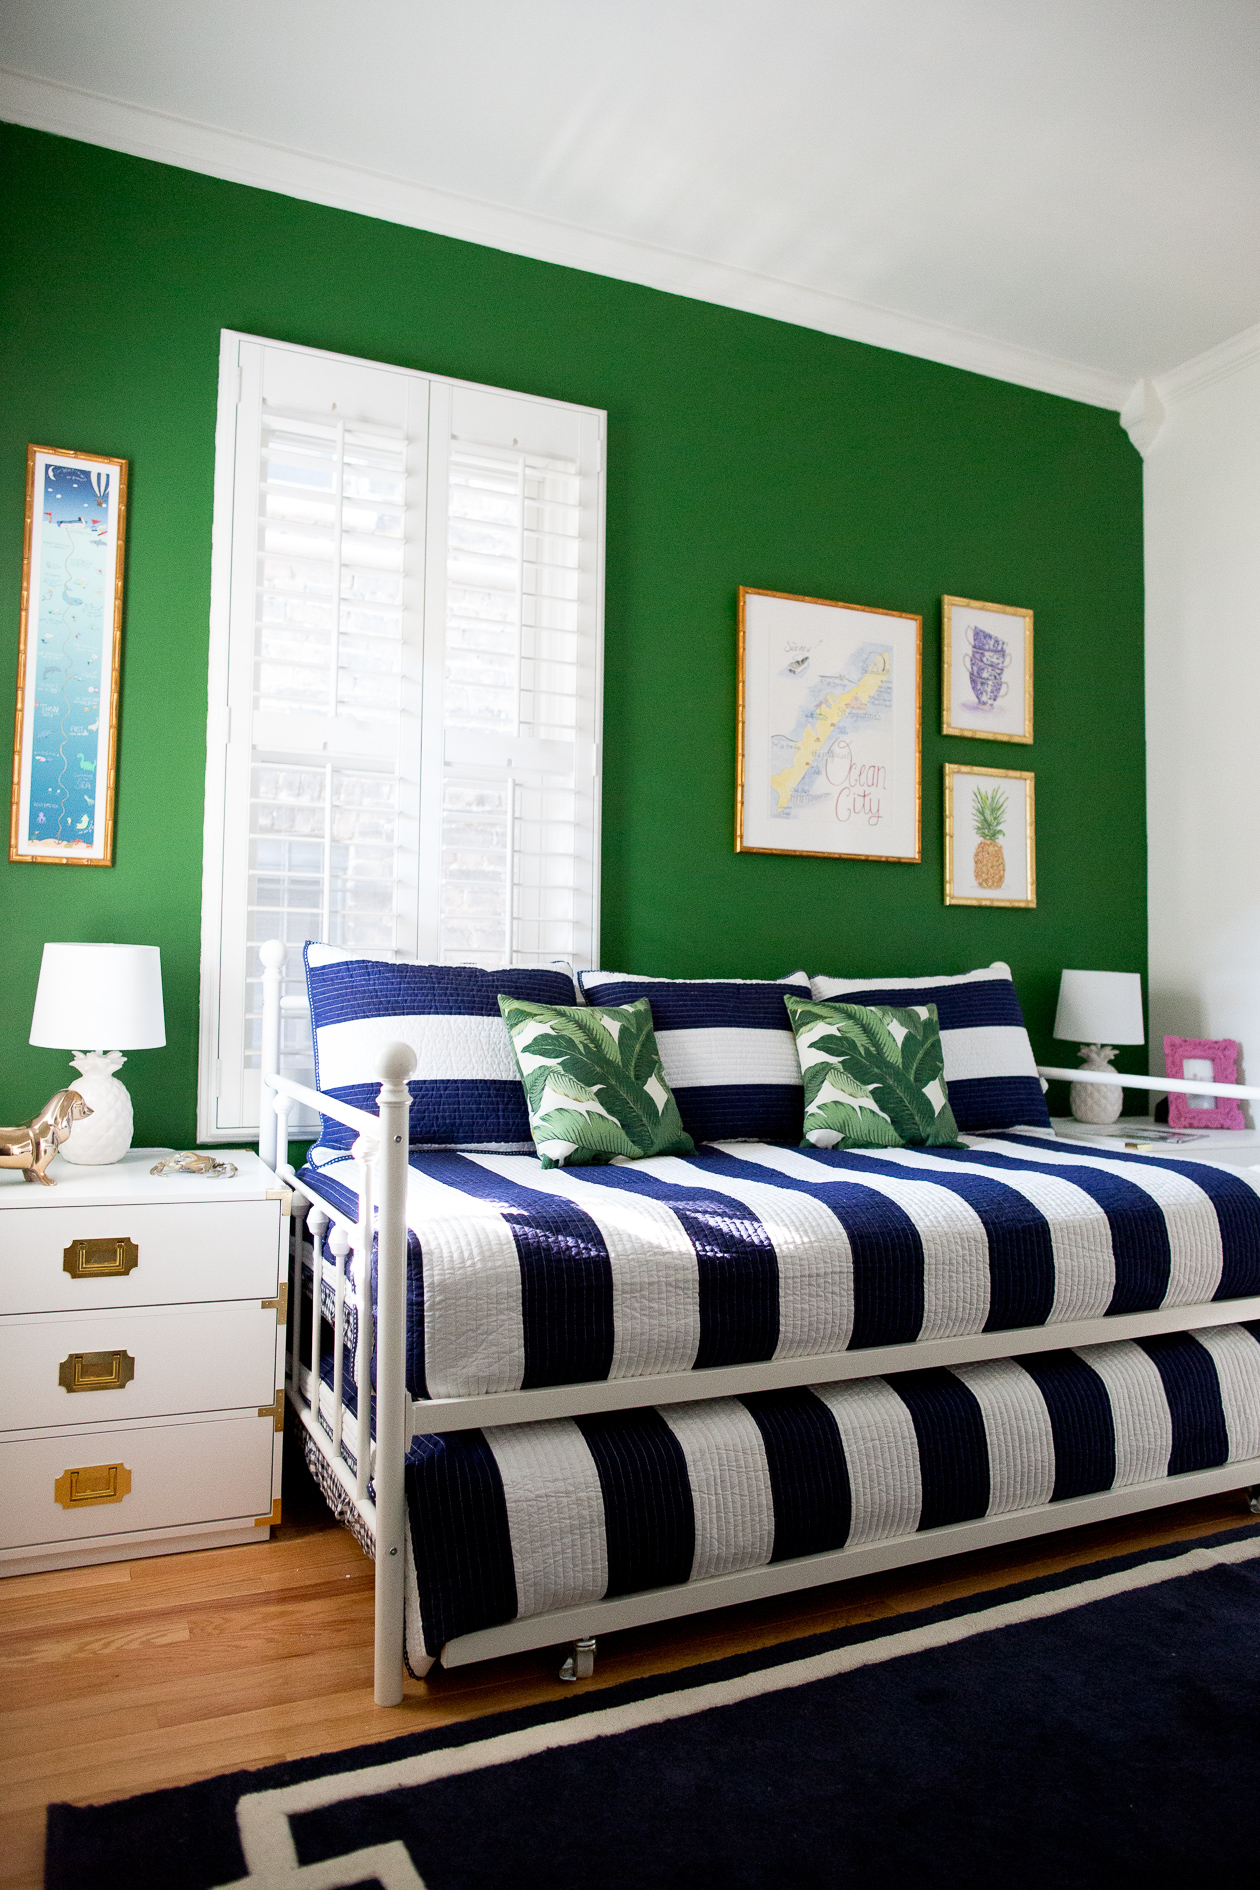 preppy-green-walls-gold-frames-503